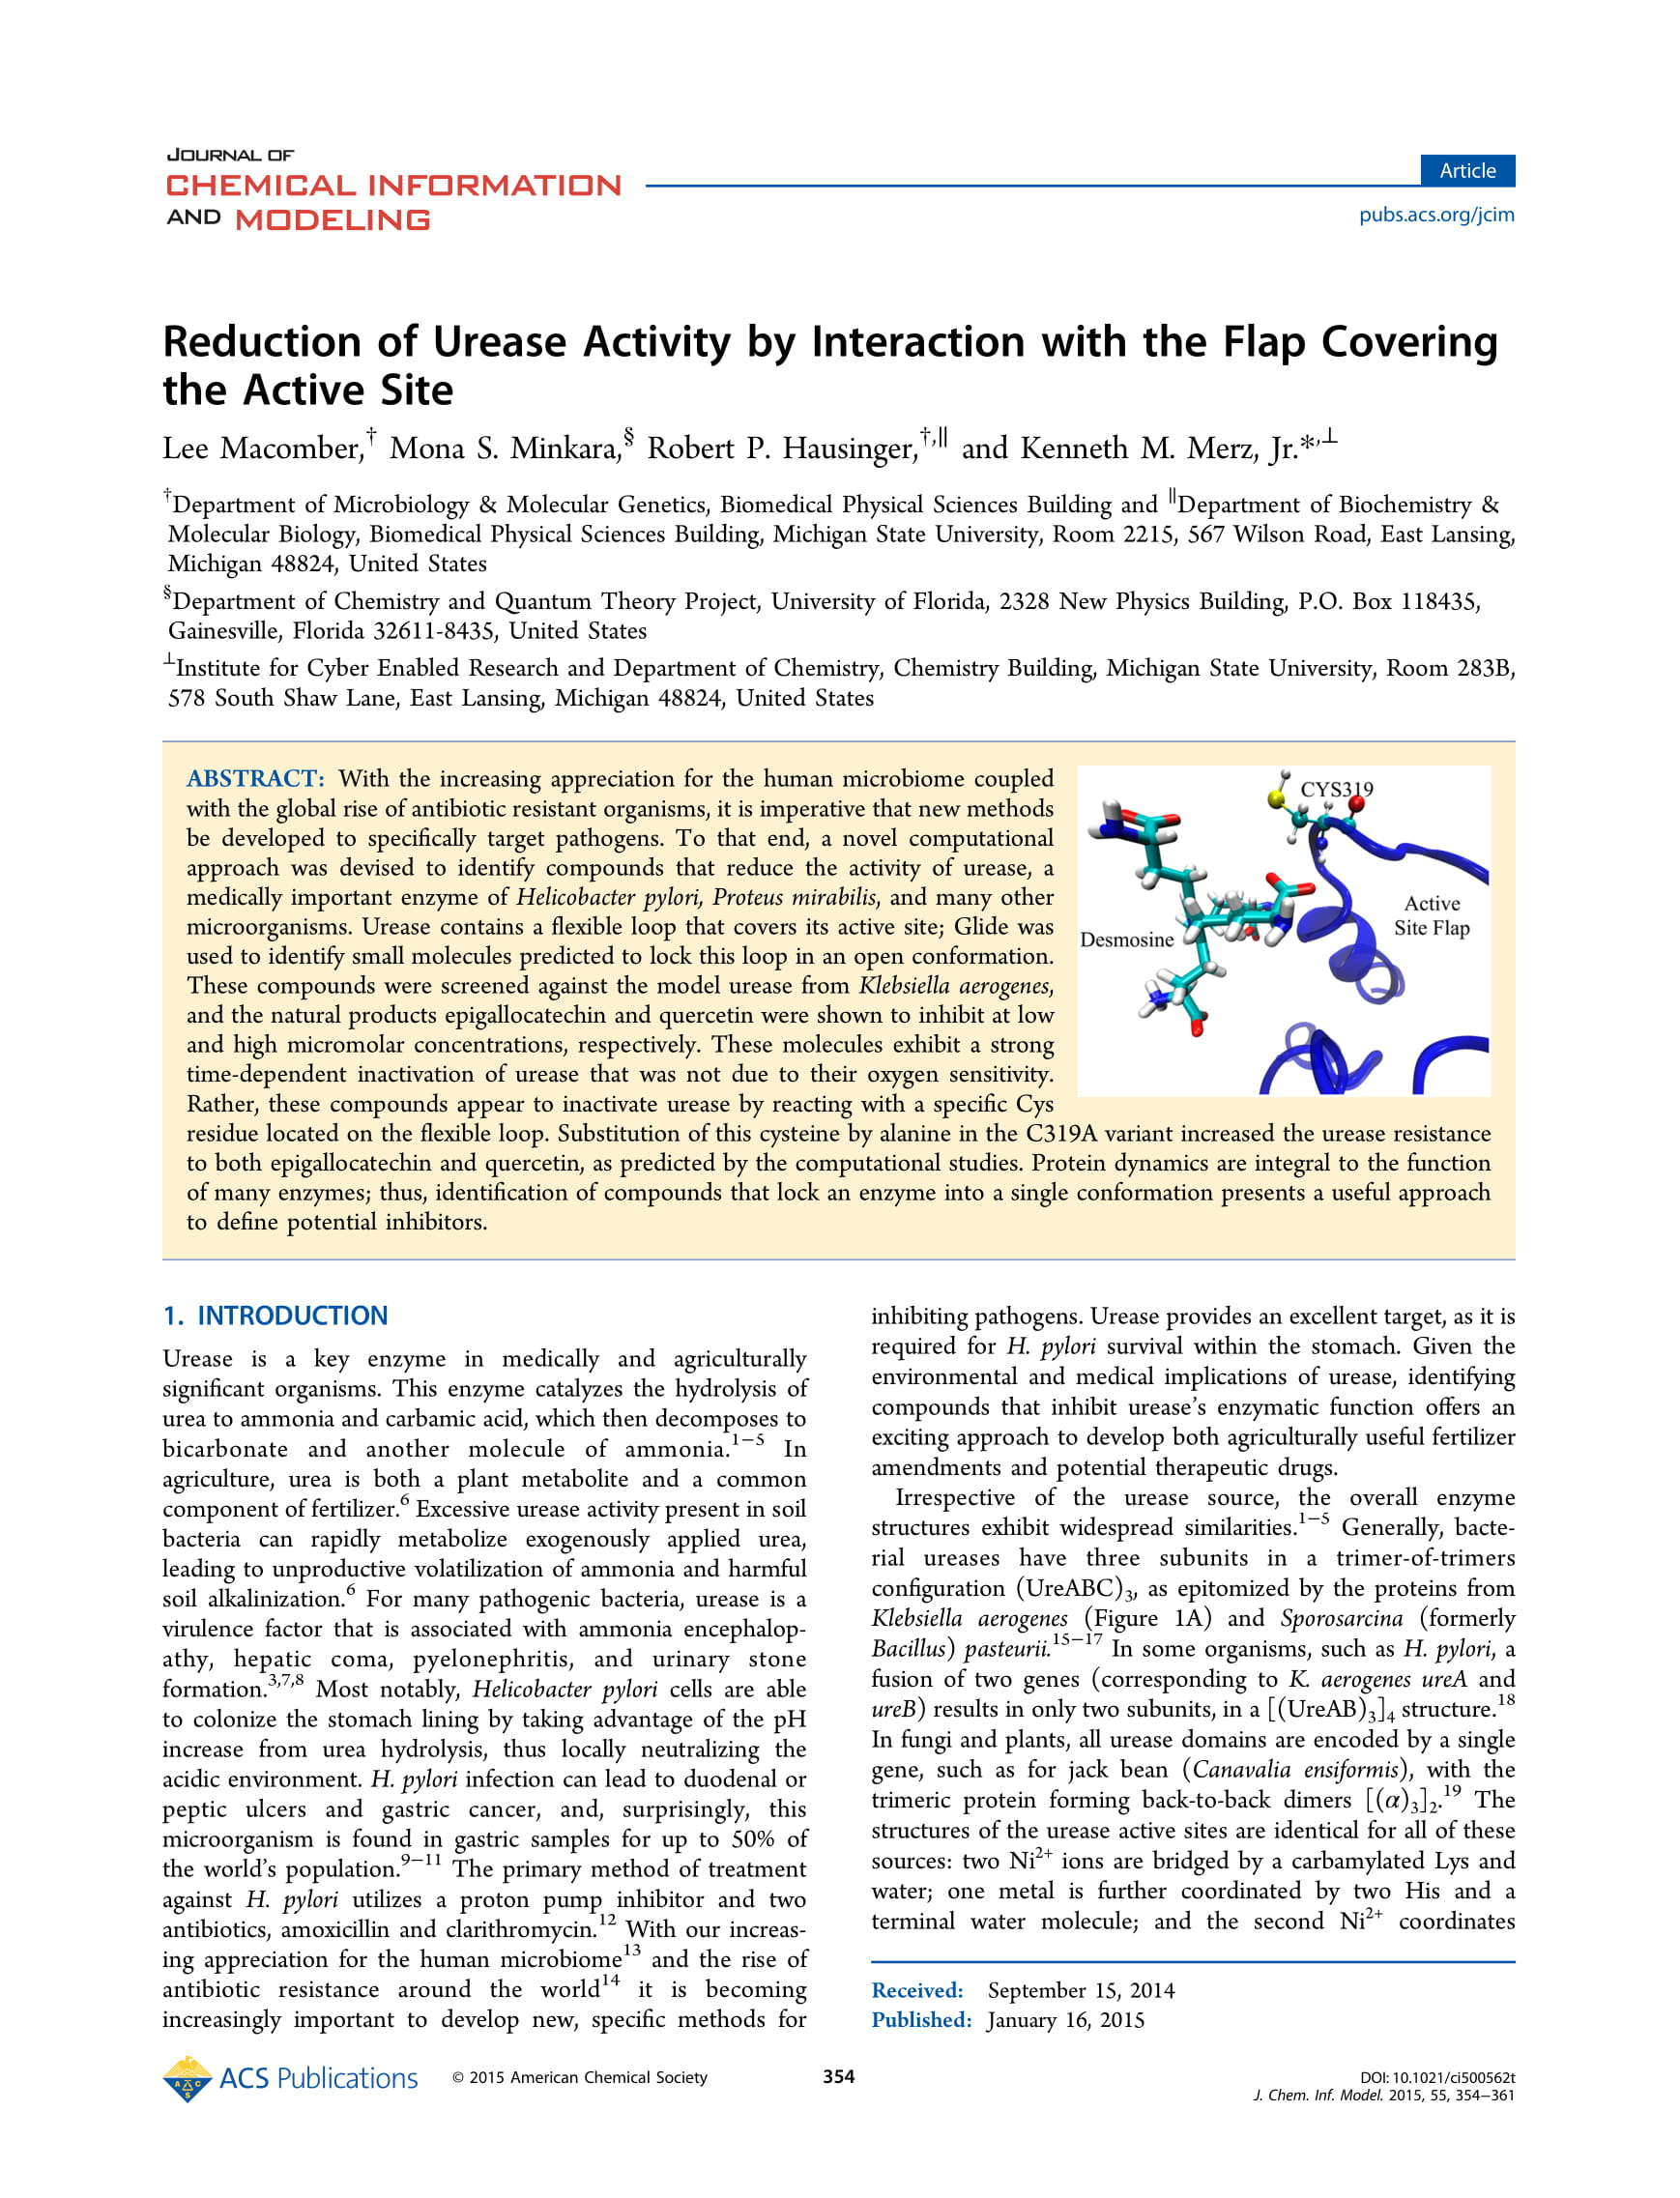 Reduction of Urease Activity by Interaction With the Flap Covering Active Site